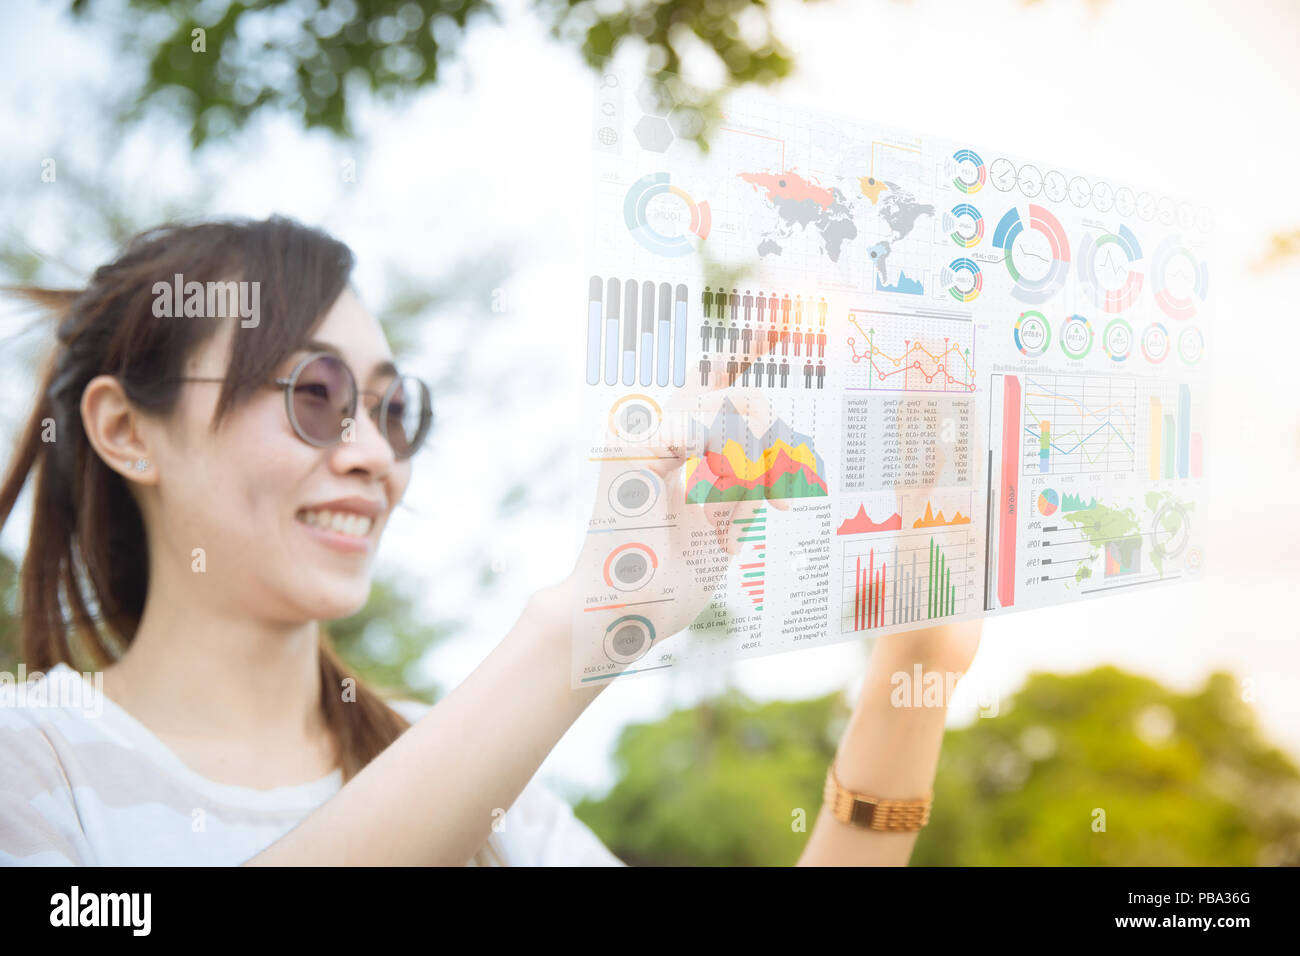 Asian chinese girl using advance technology of computer hologram air screen display mix media business information data chart outdoor Stock Photo